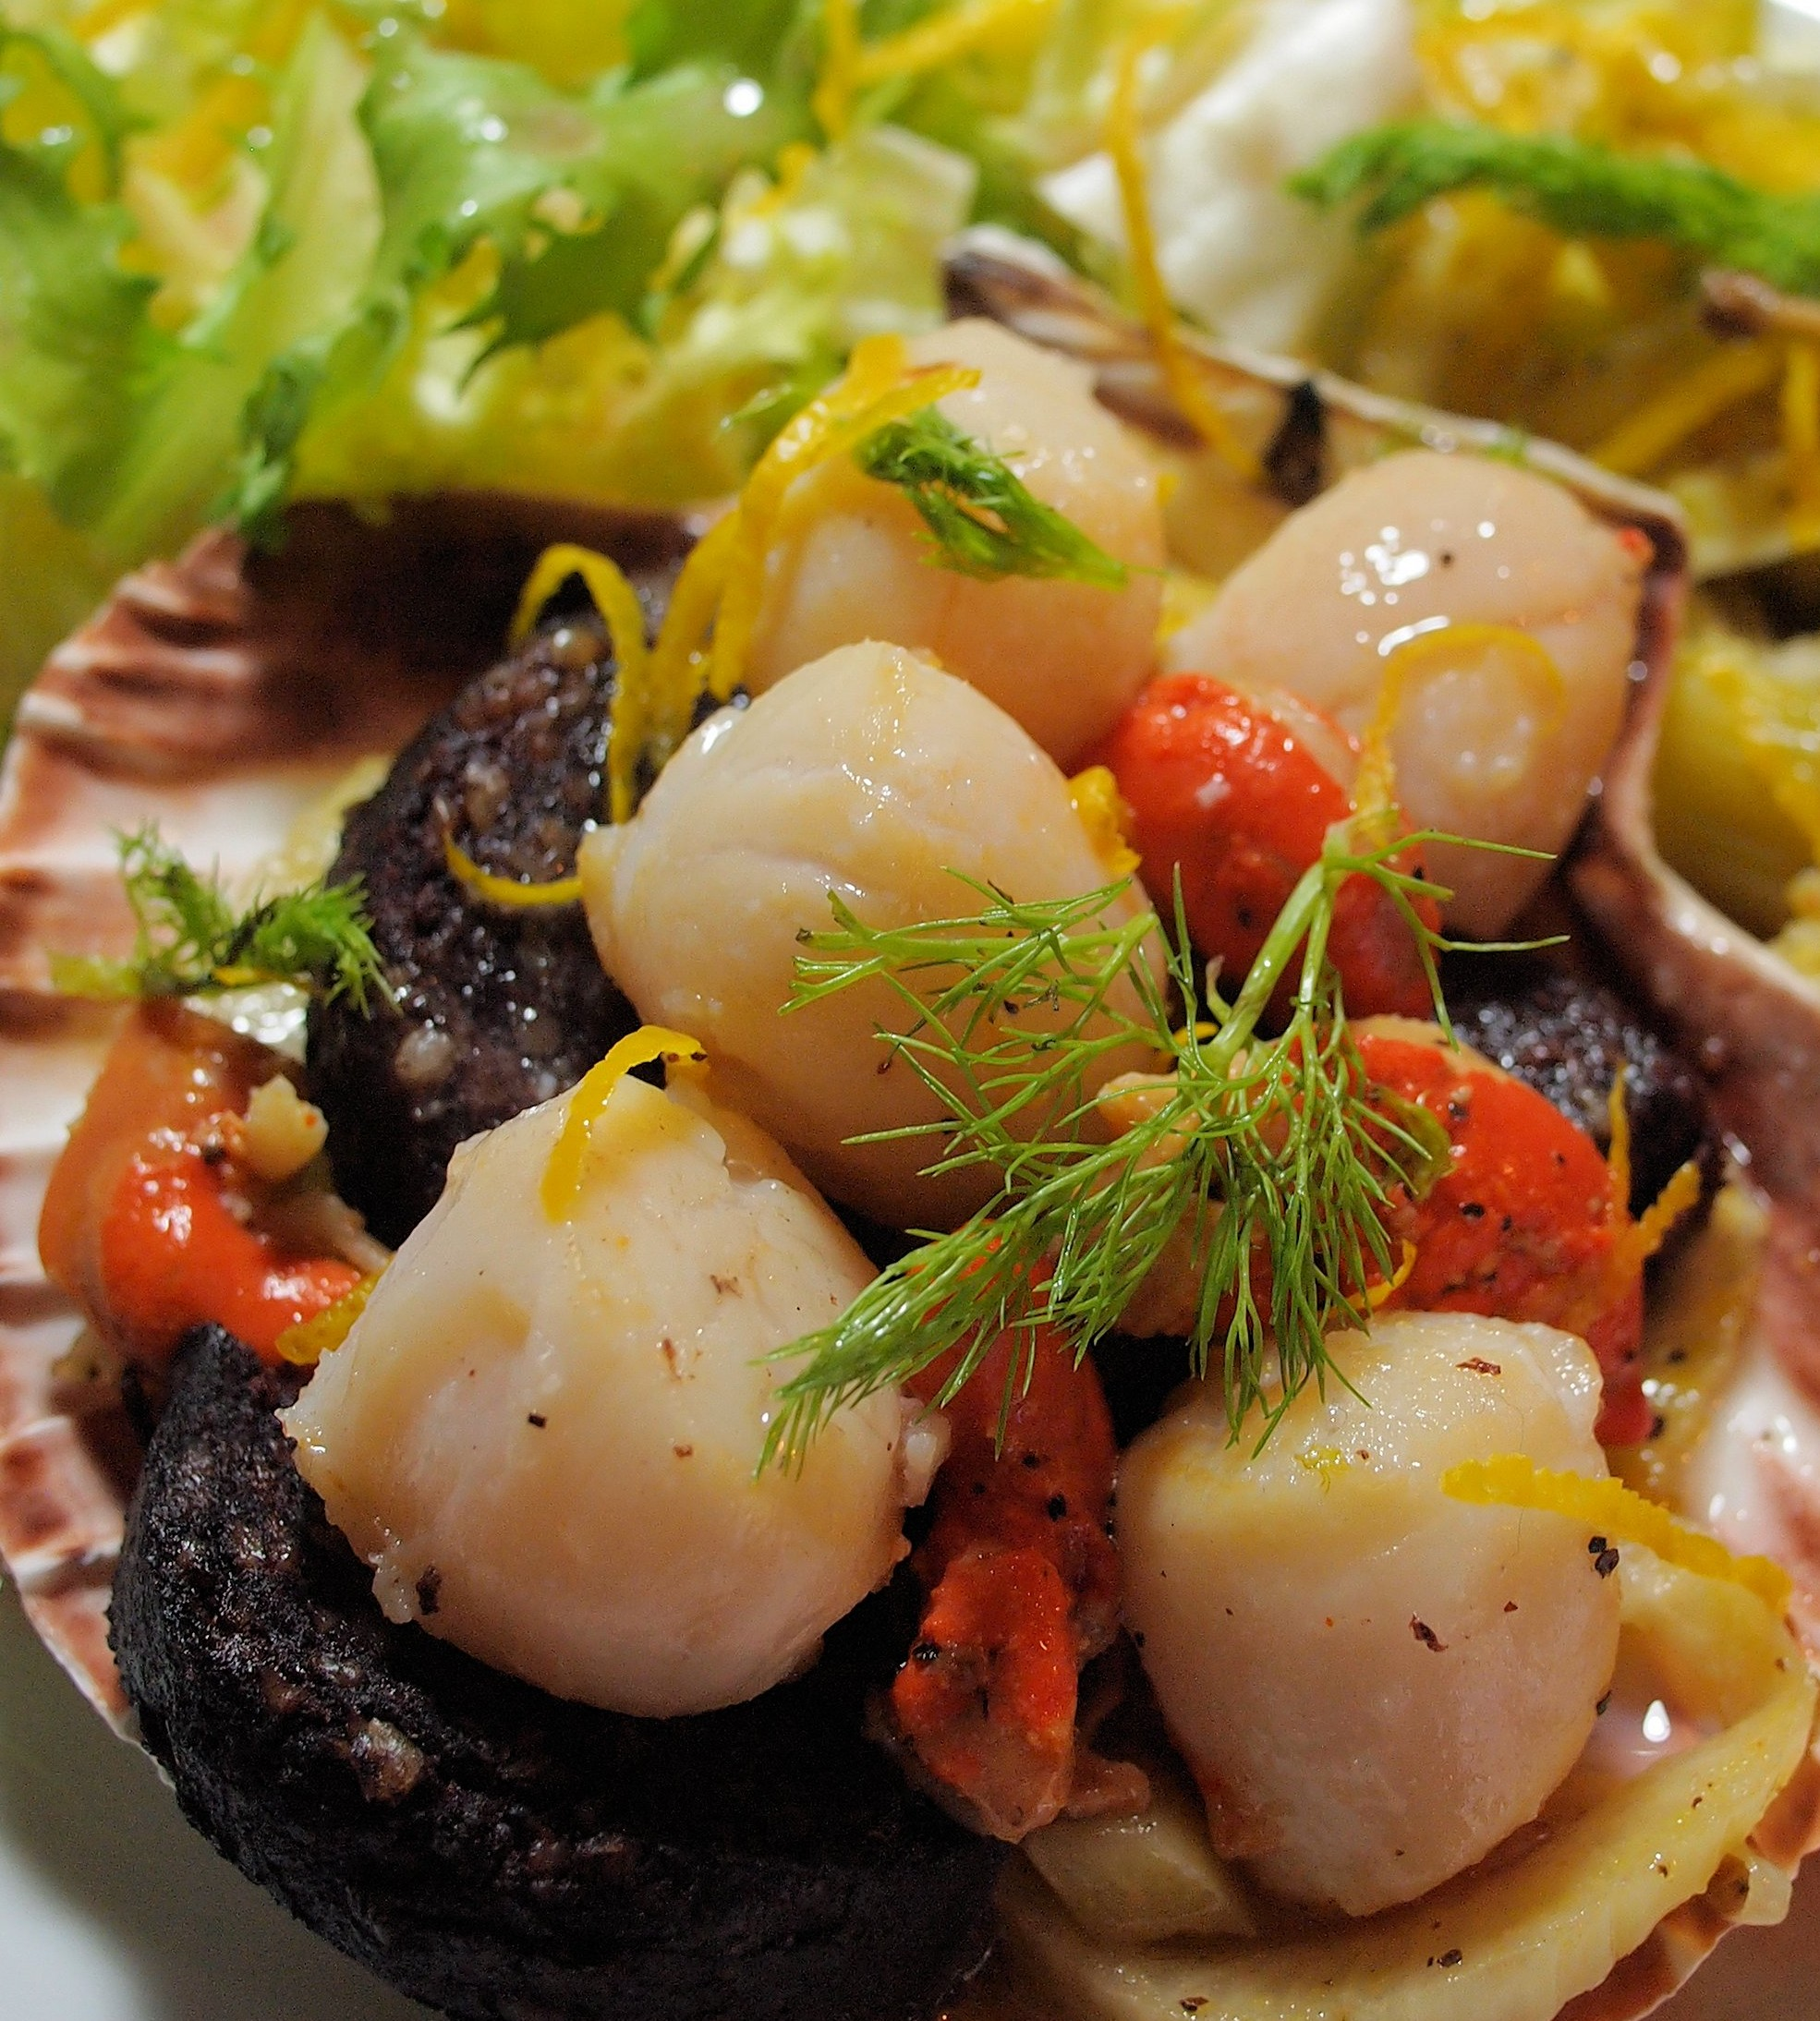 Salad of black pudding and scallops with crisp bacon, apples and hazelnuts